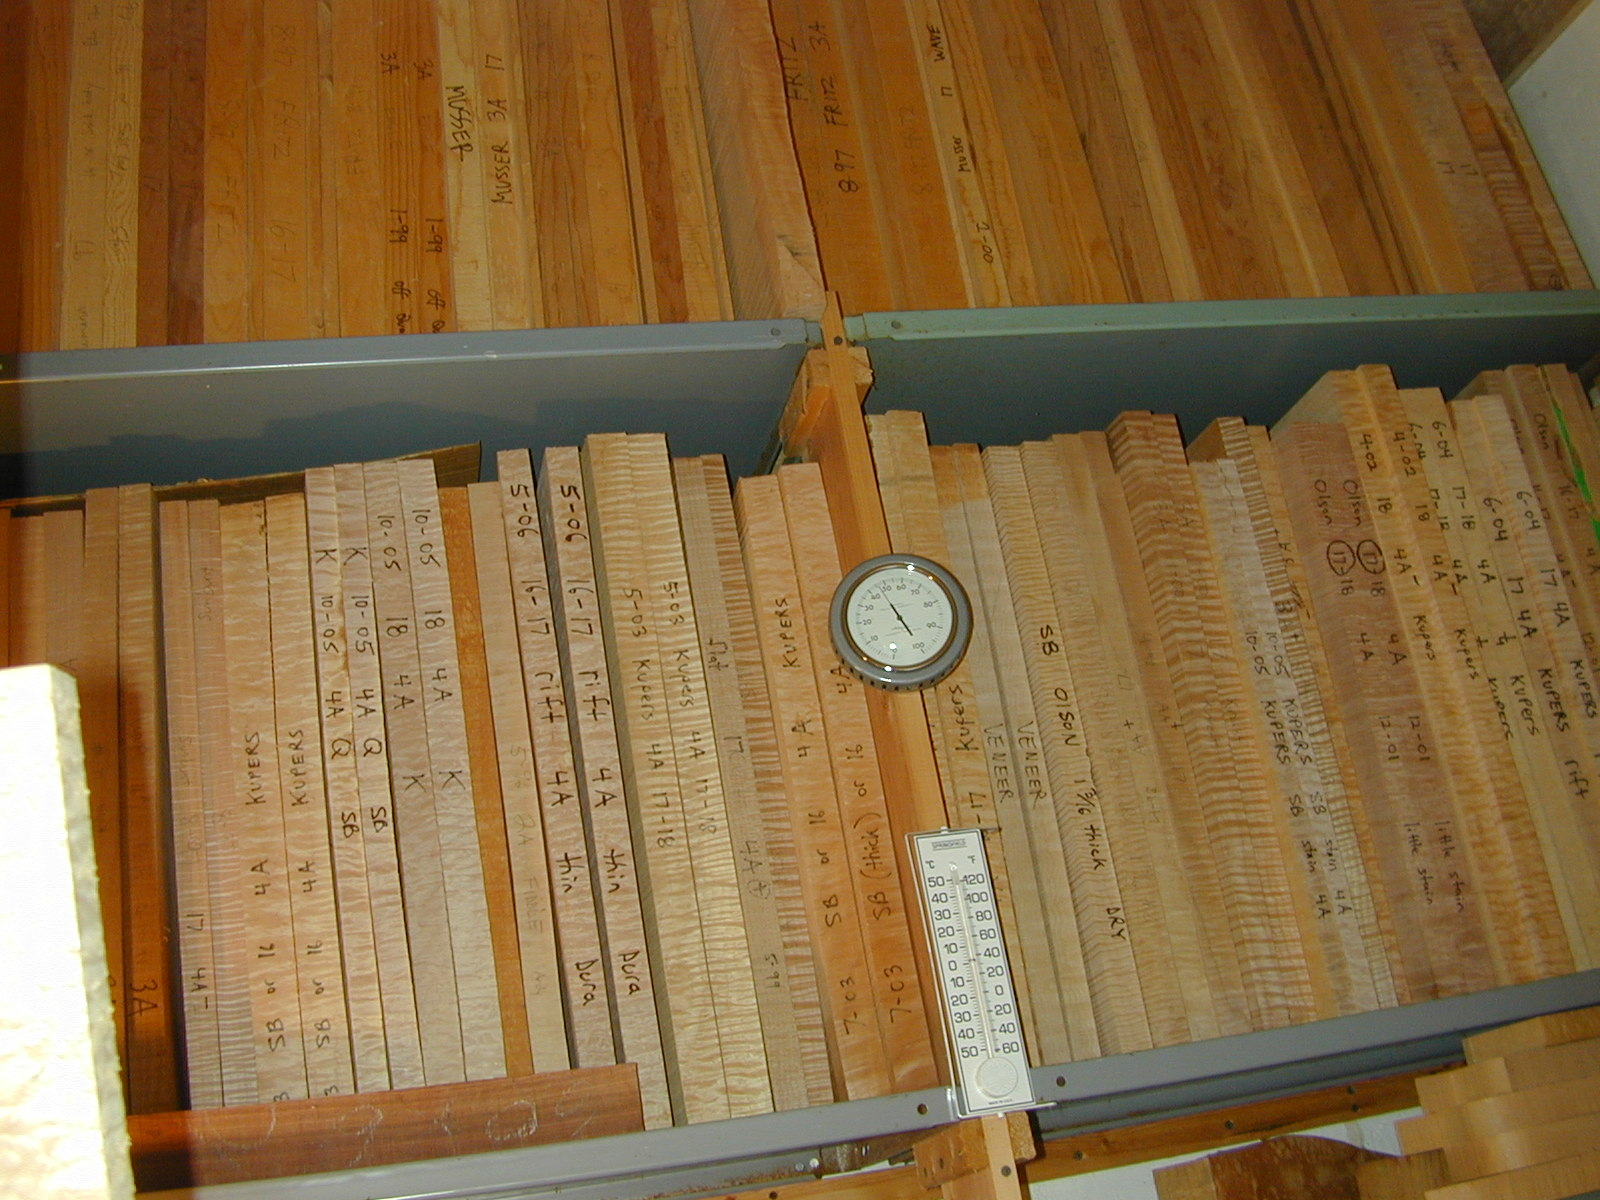 Tops and backs are graded and stored, using humidity and temperature control